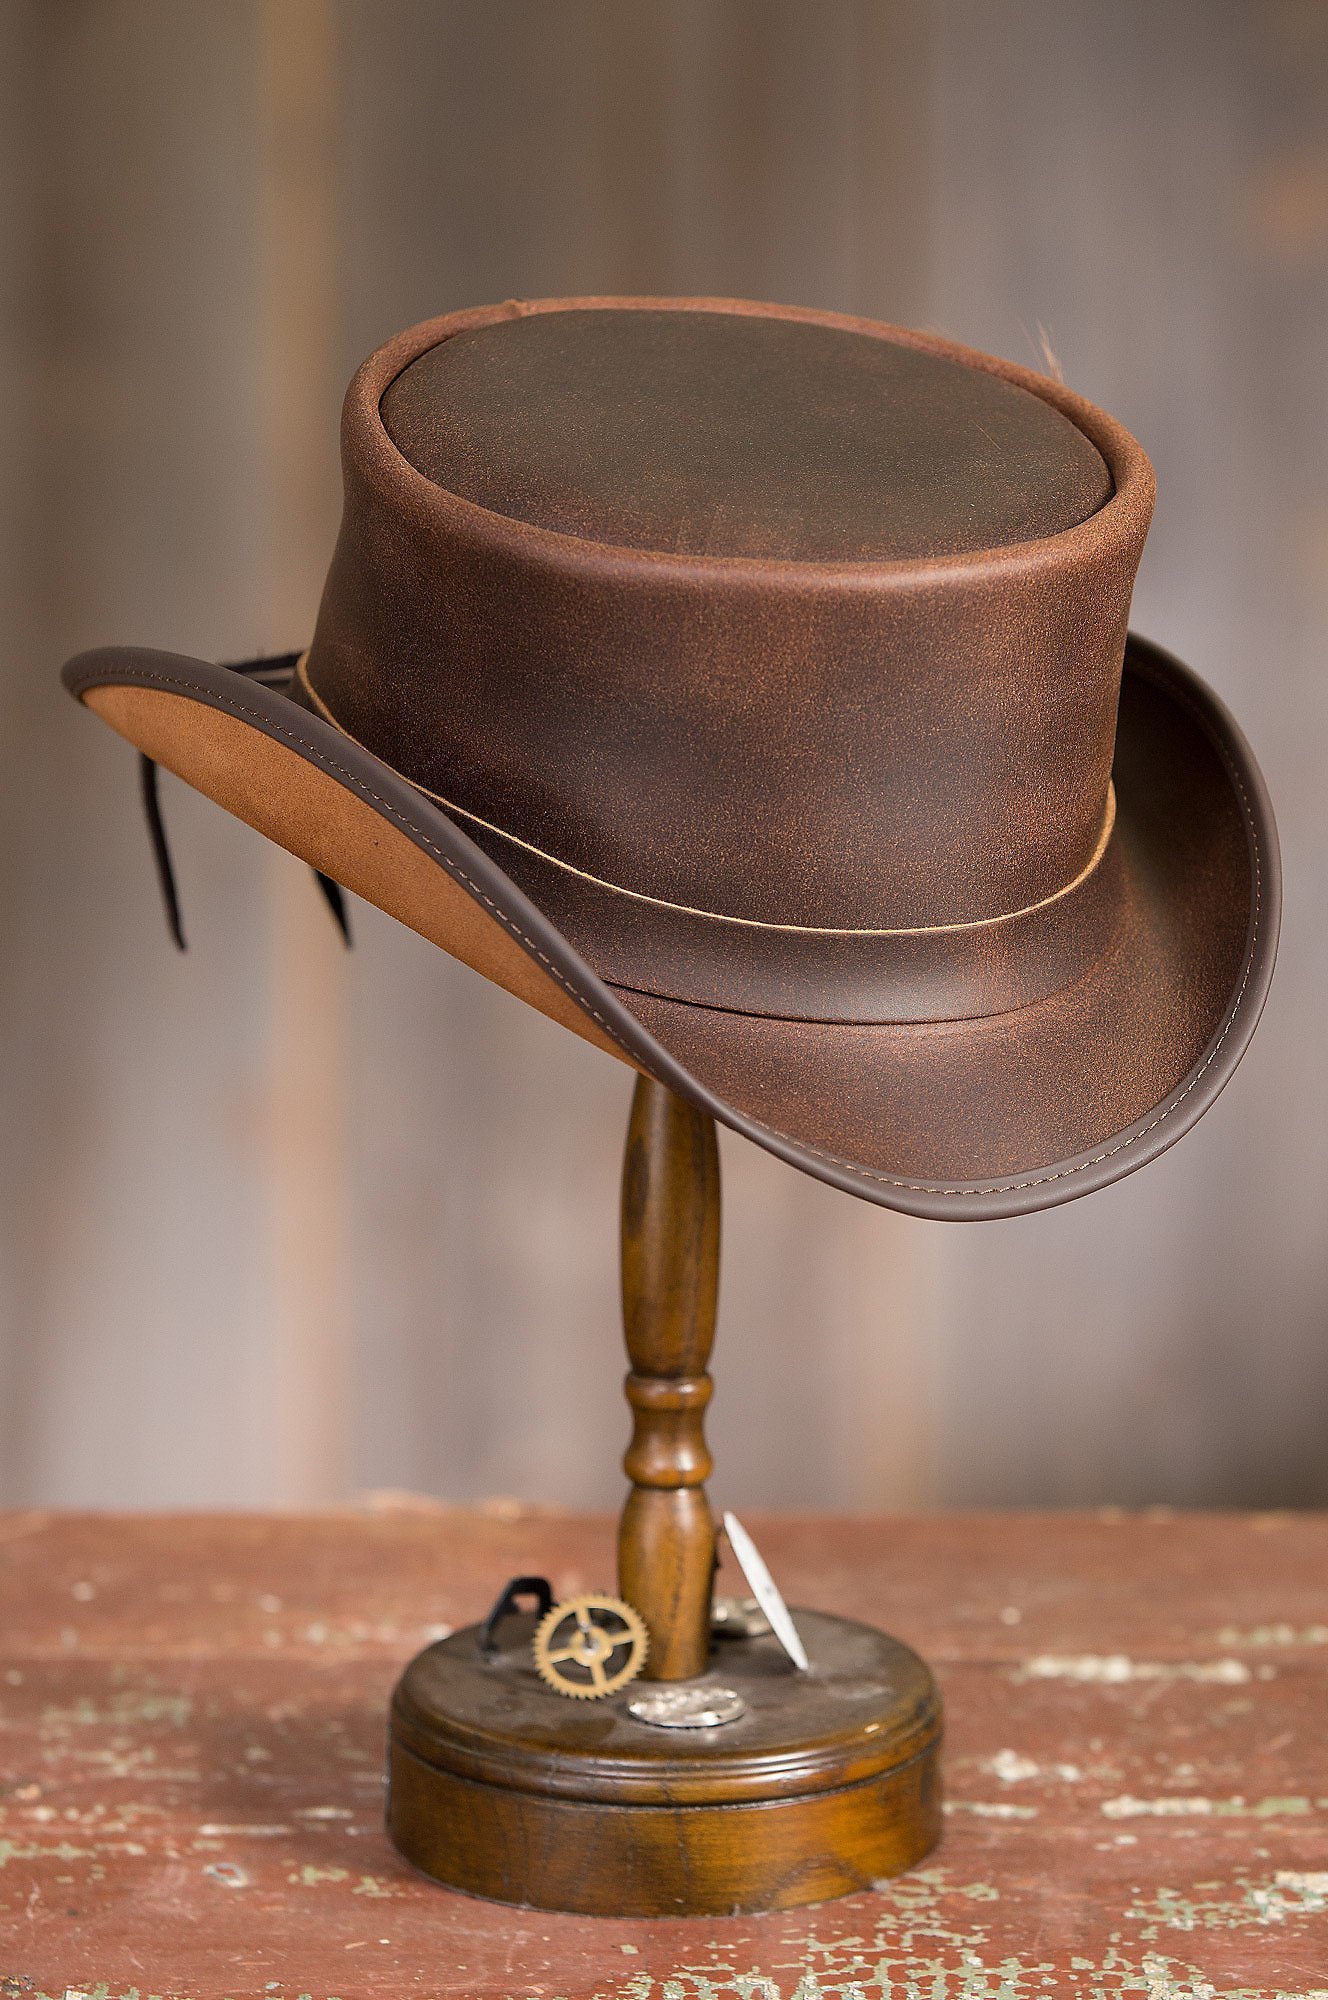 Overland Sheepskin Co. Steampunk Victorian Marlow Leather Top Hat, Brown, Size Medium (7) by Overland Sheepskin Co (Image #5)